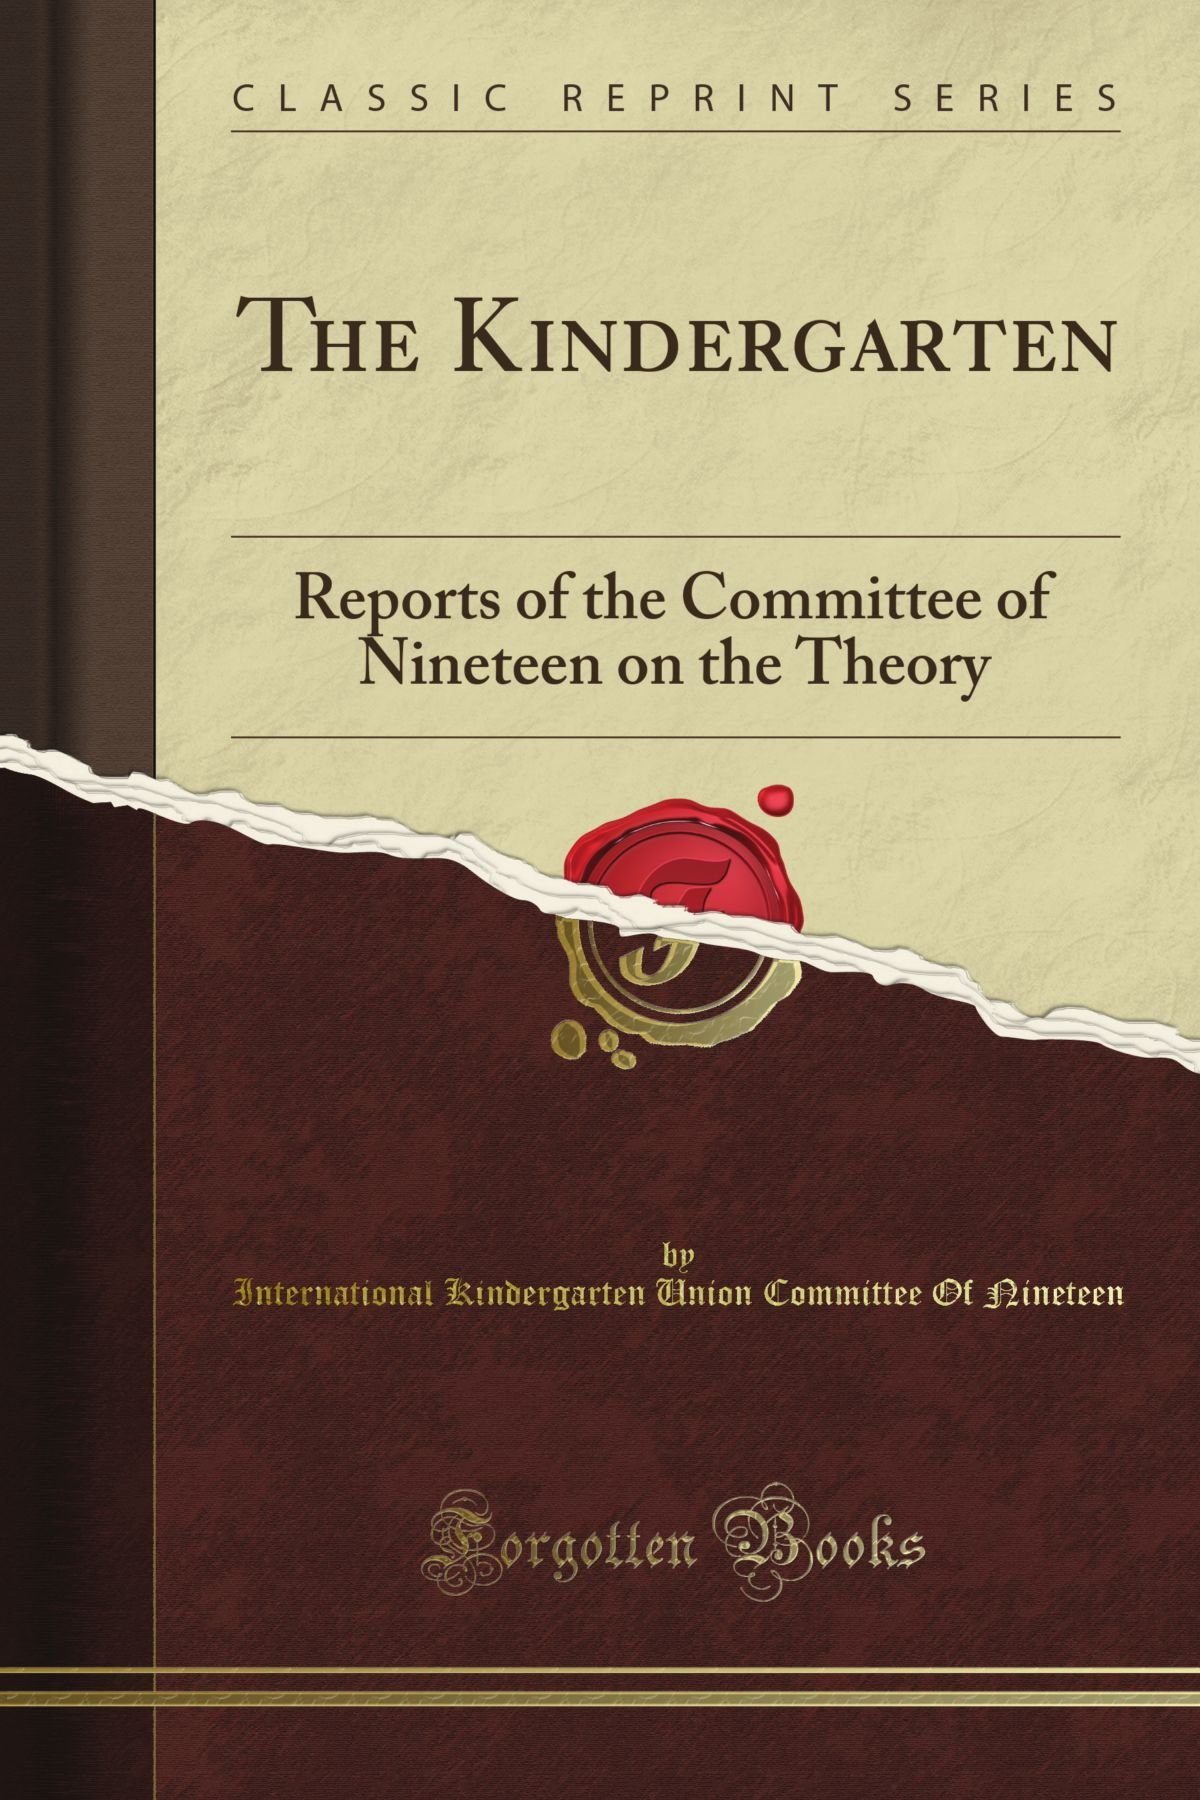 Download The Kindergarten: Reports of the Committee of Nineteen on the Theory (Classic Reprint) ebook